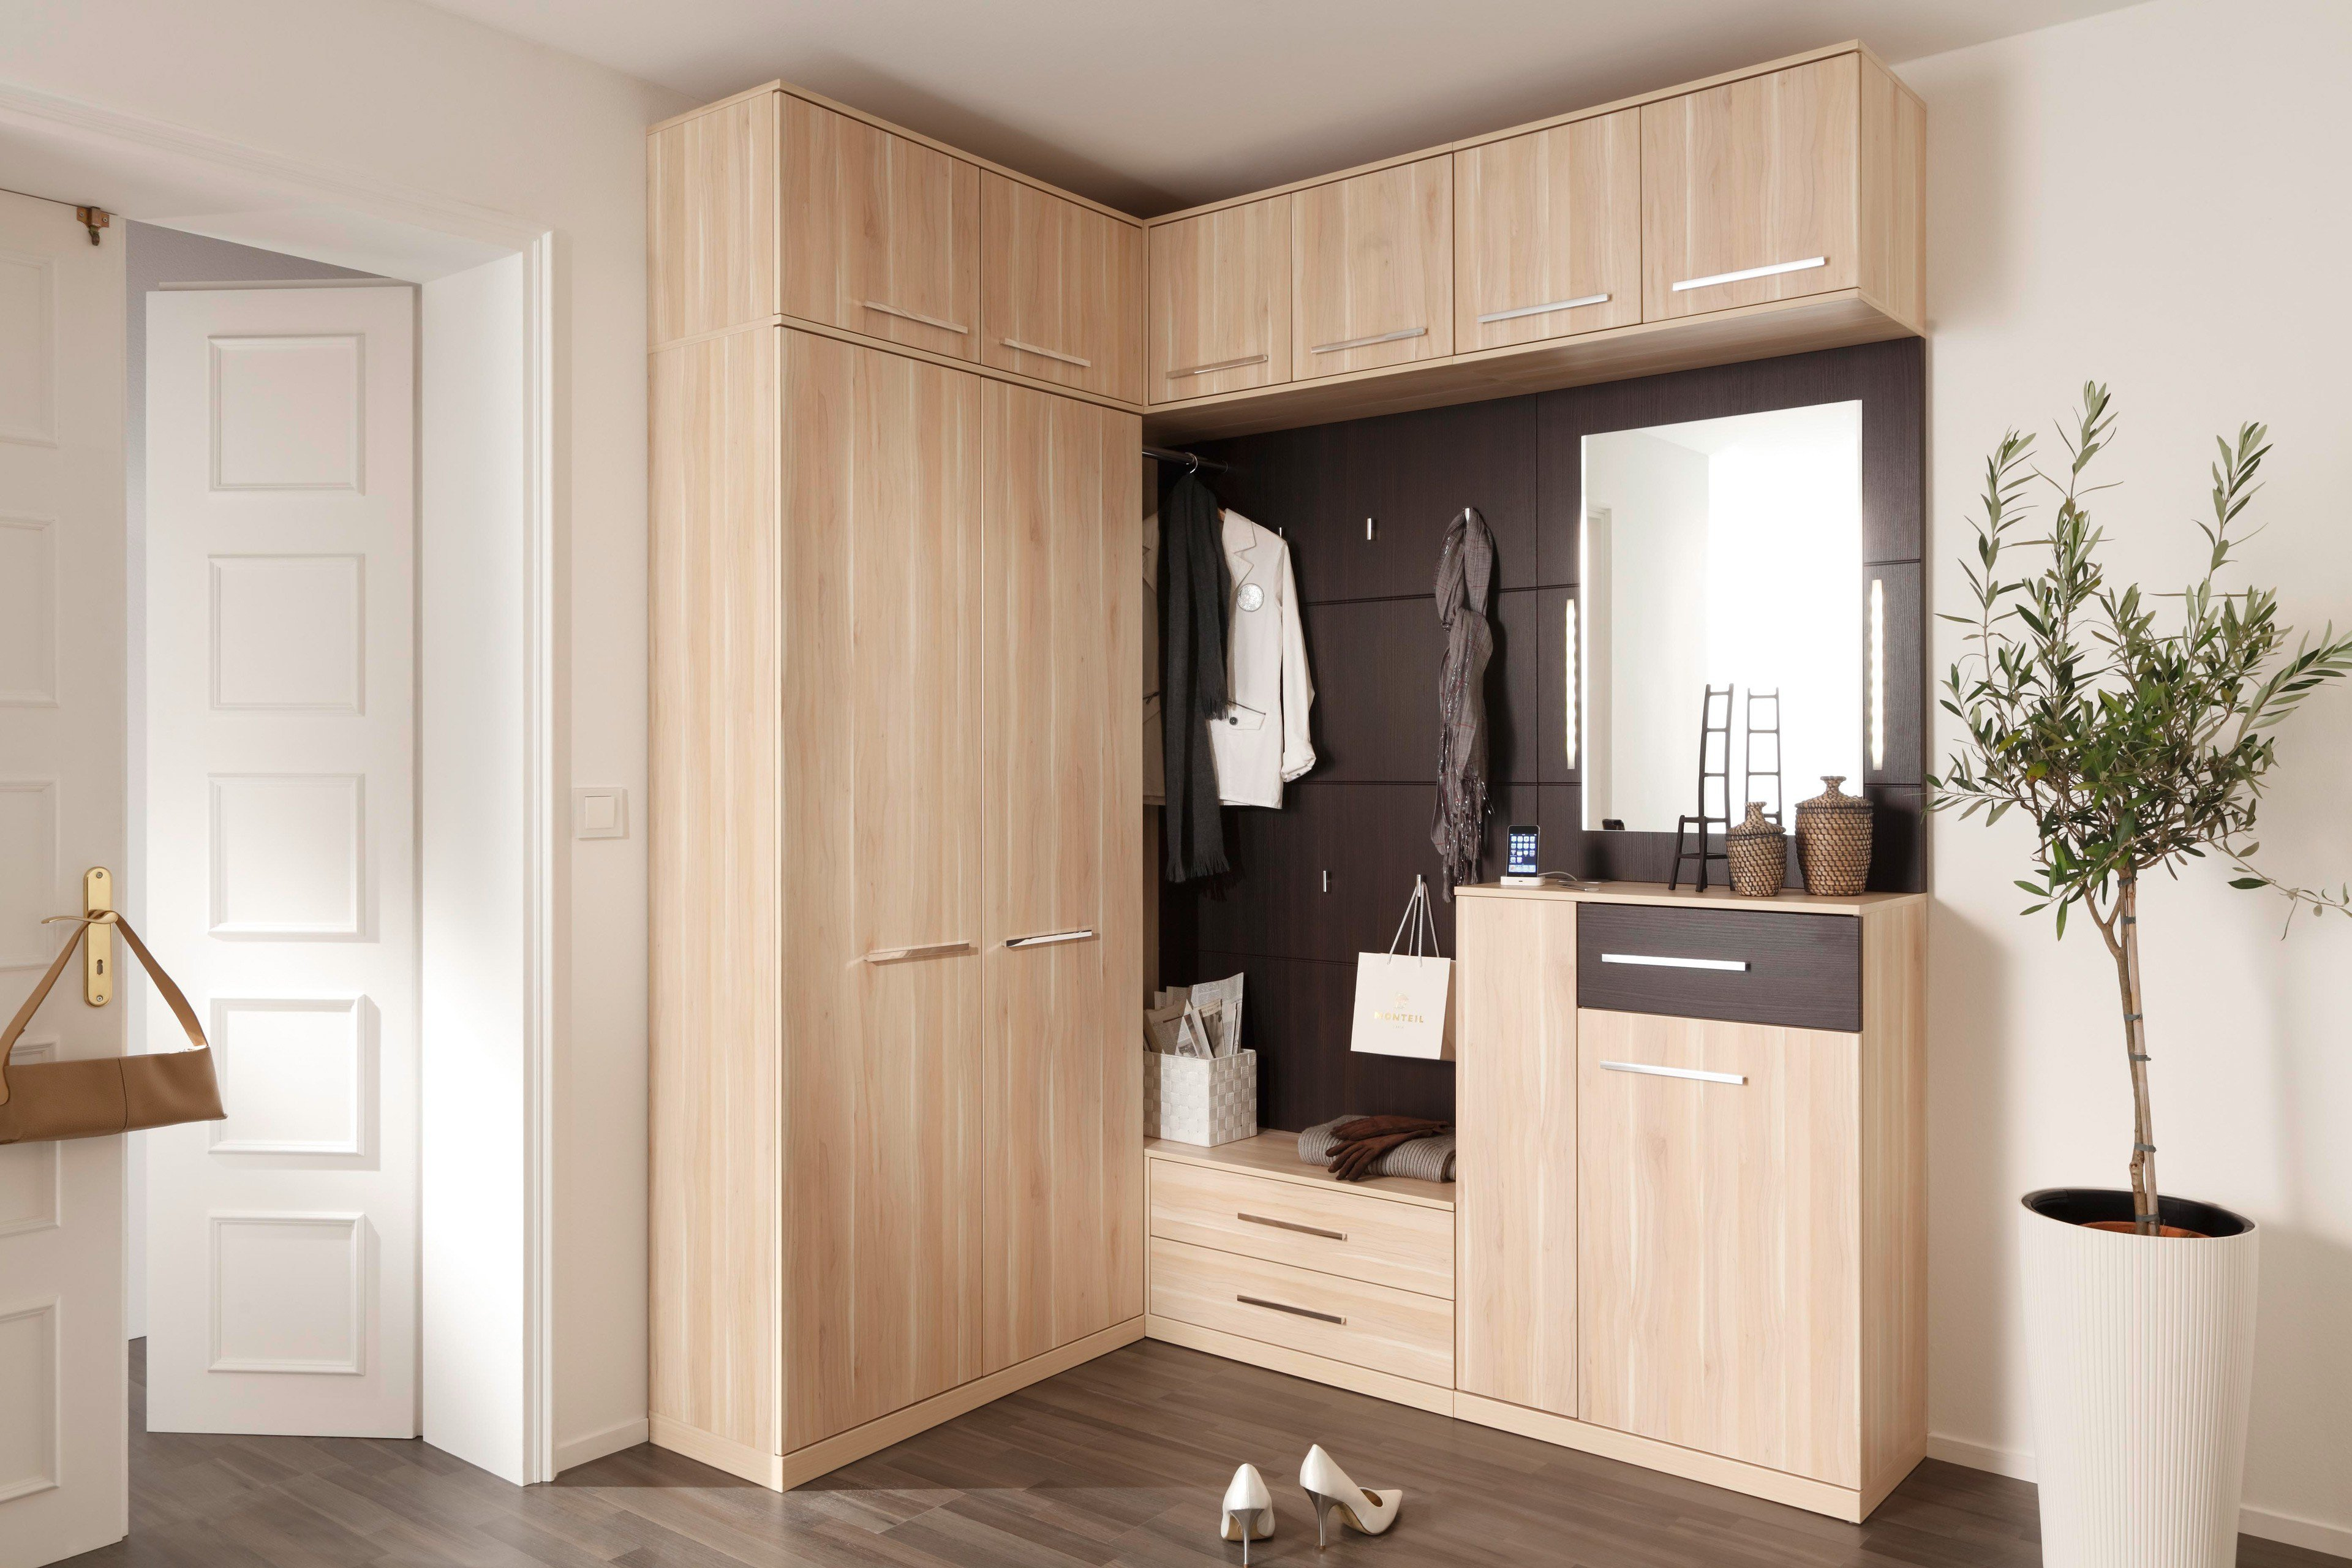 prenneis garderobe estoril plus picton apfelbaum pinie baun m bel letz ihr online shop. Black Bedroom Furniture Sets. Home Design Ideas